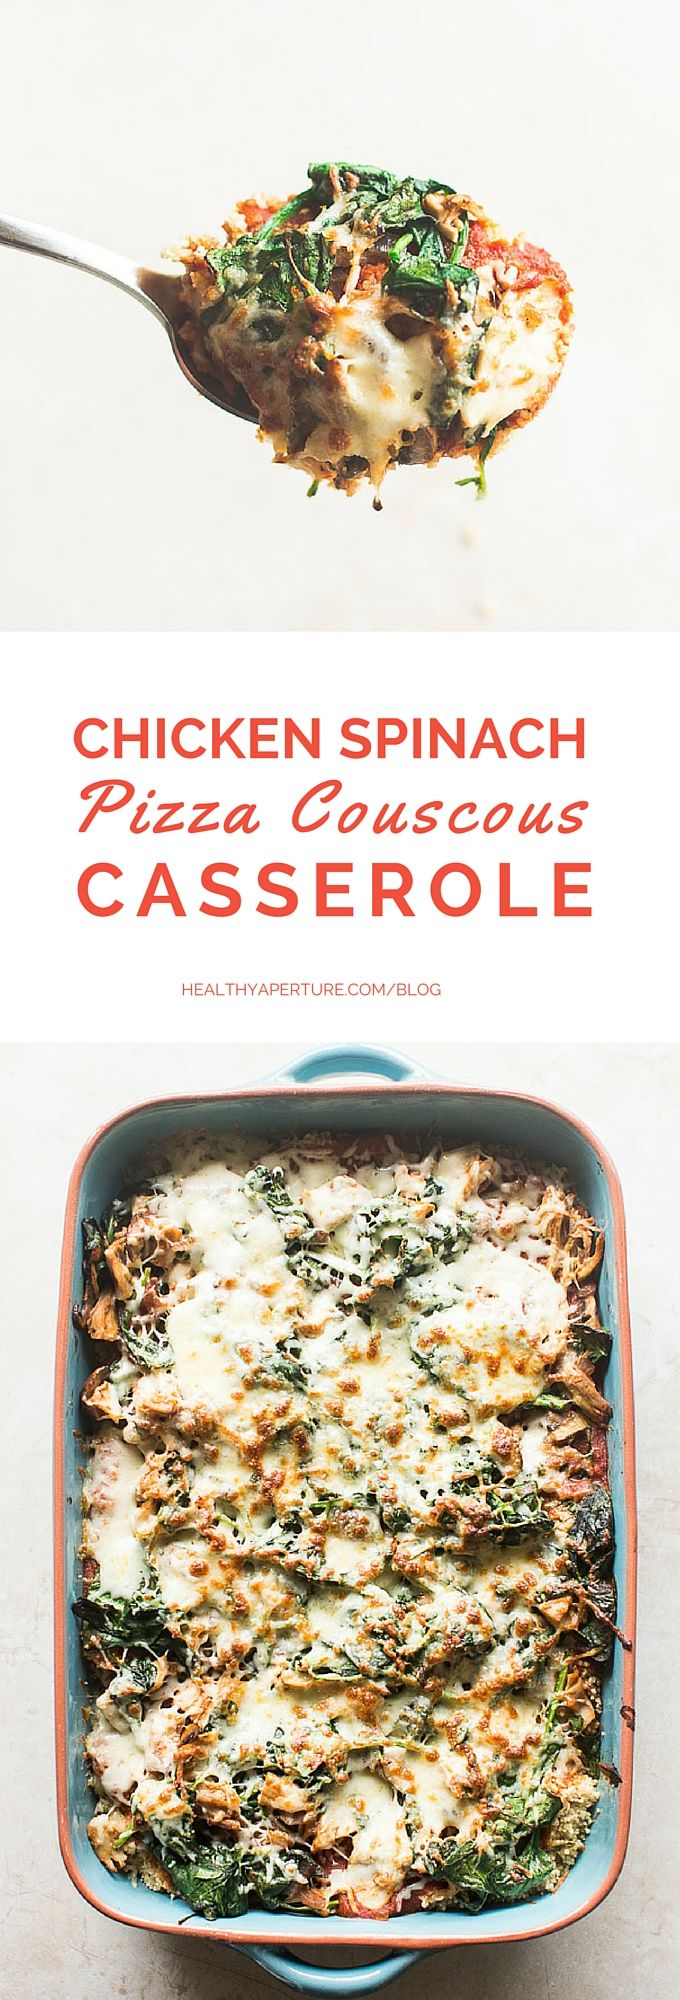 Chicken Spinach Pizza Couscous Casserole is the perfect make ahead meal with all the flavors of pizza in a casserole! (Make Ahead Chicken Meals)